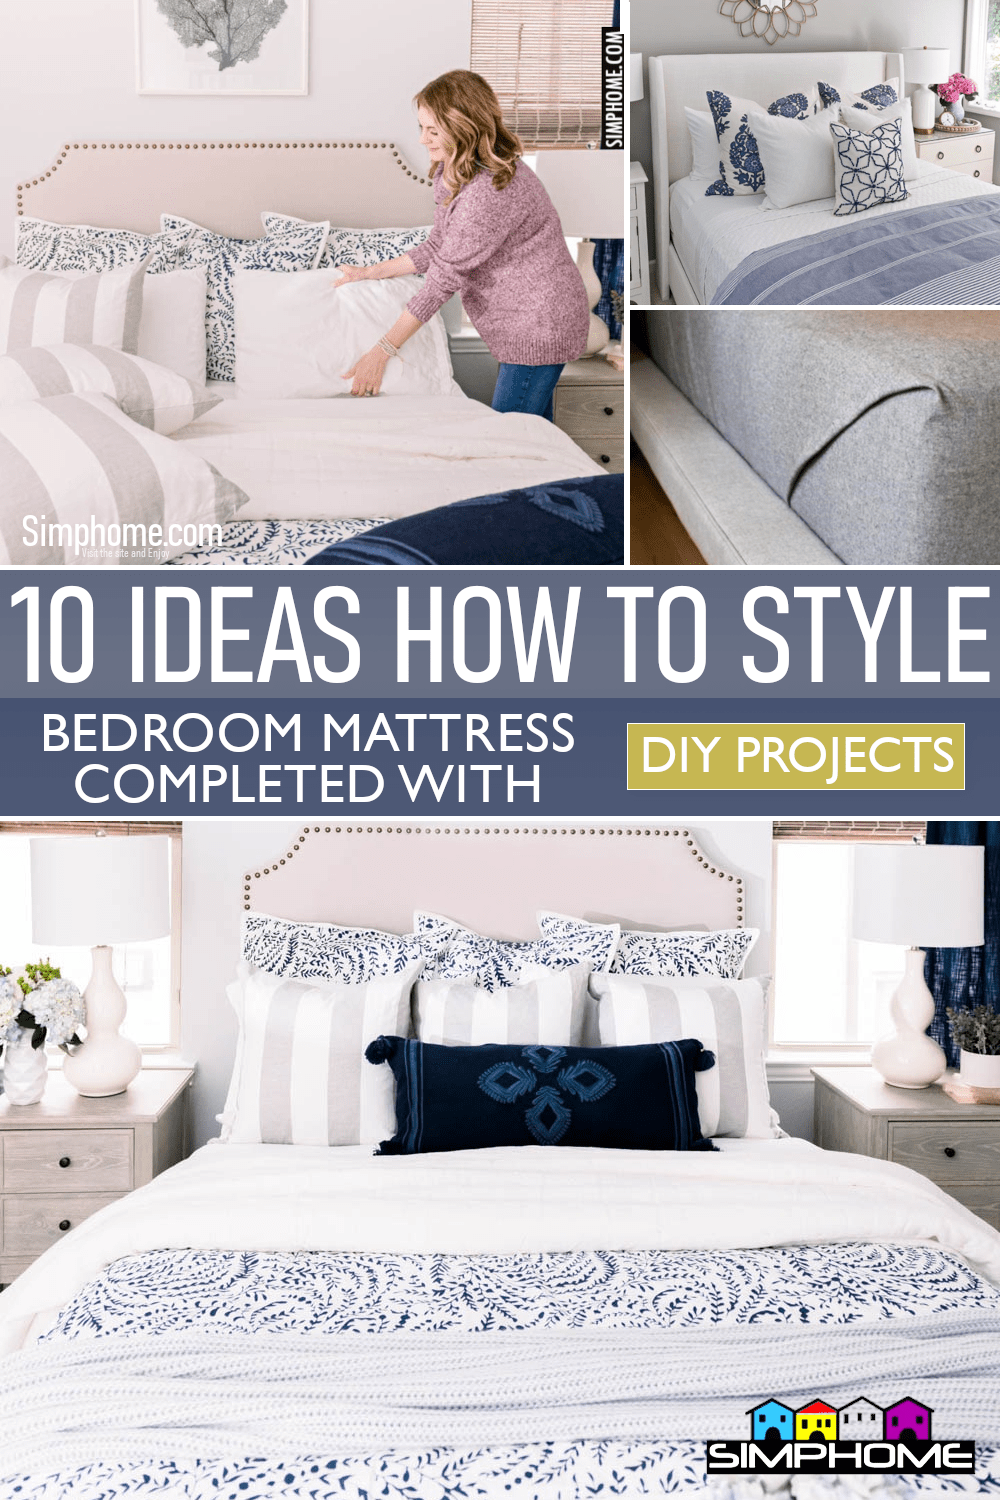 10 Ideas How to Style Your Bedroom Mattress via Simphome.comFeatured